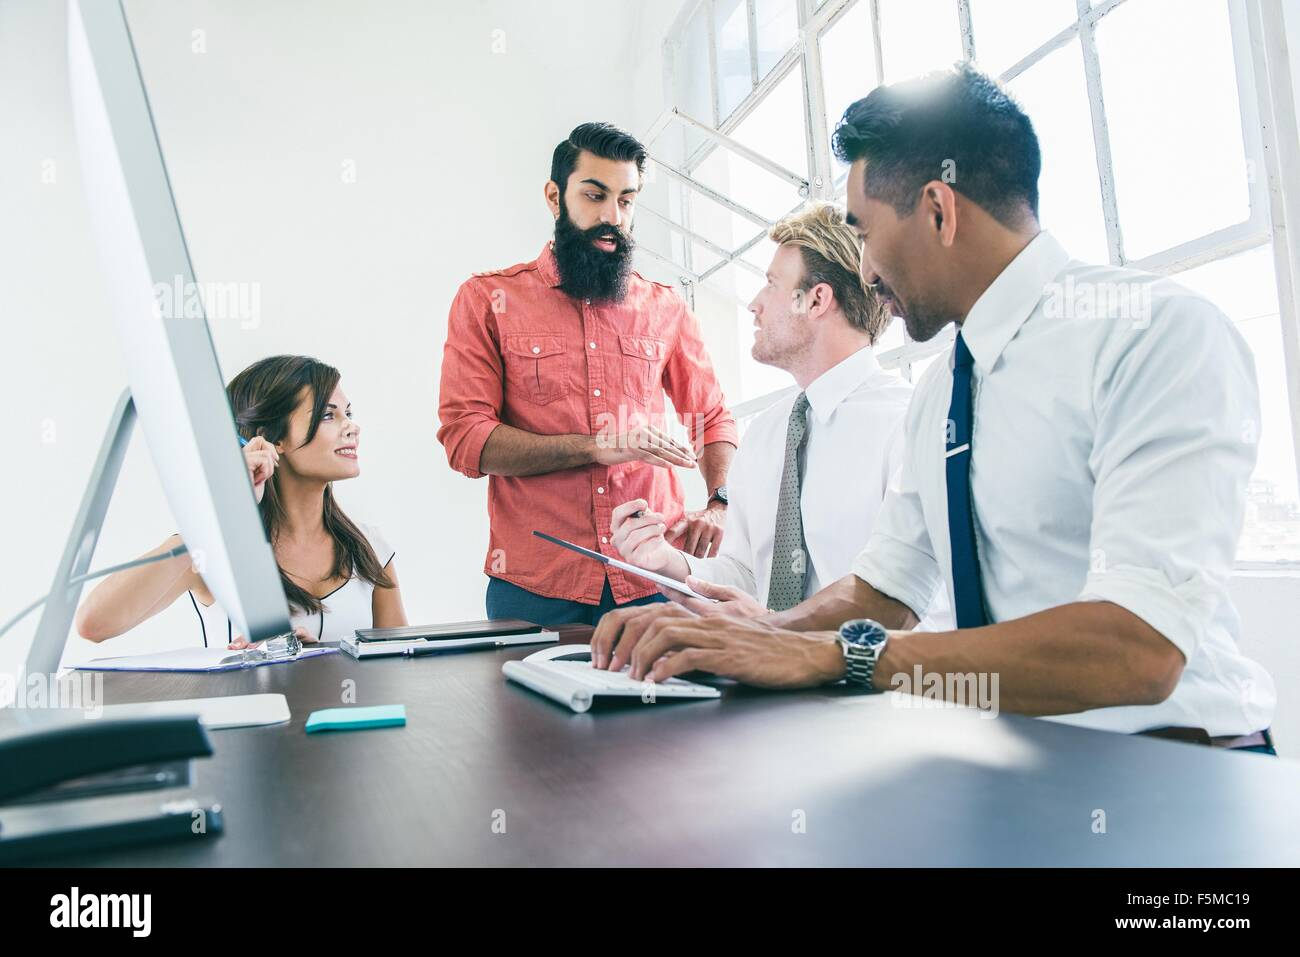 Business people in brainstorming meeting by office window - Stock Image